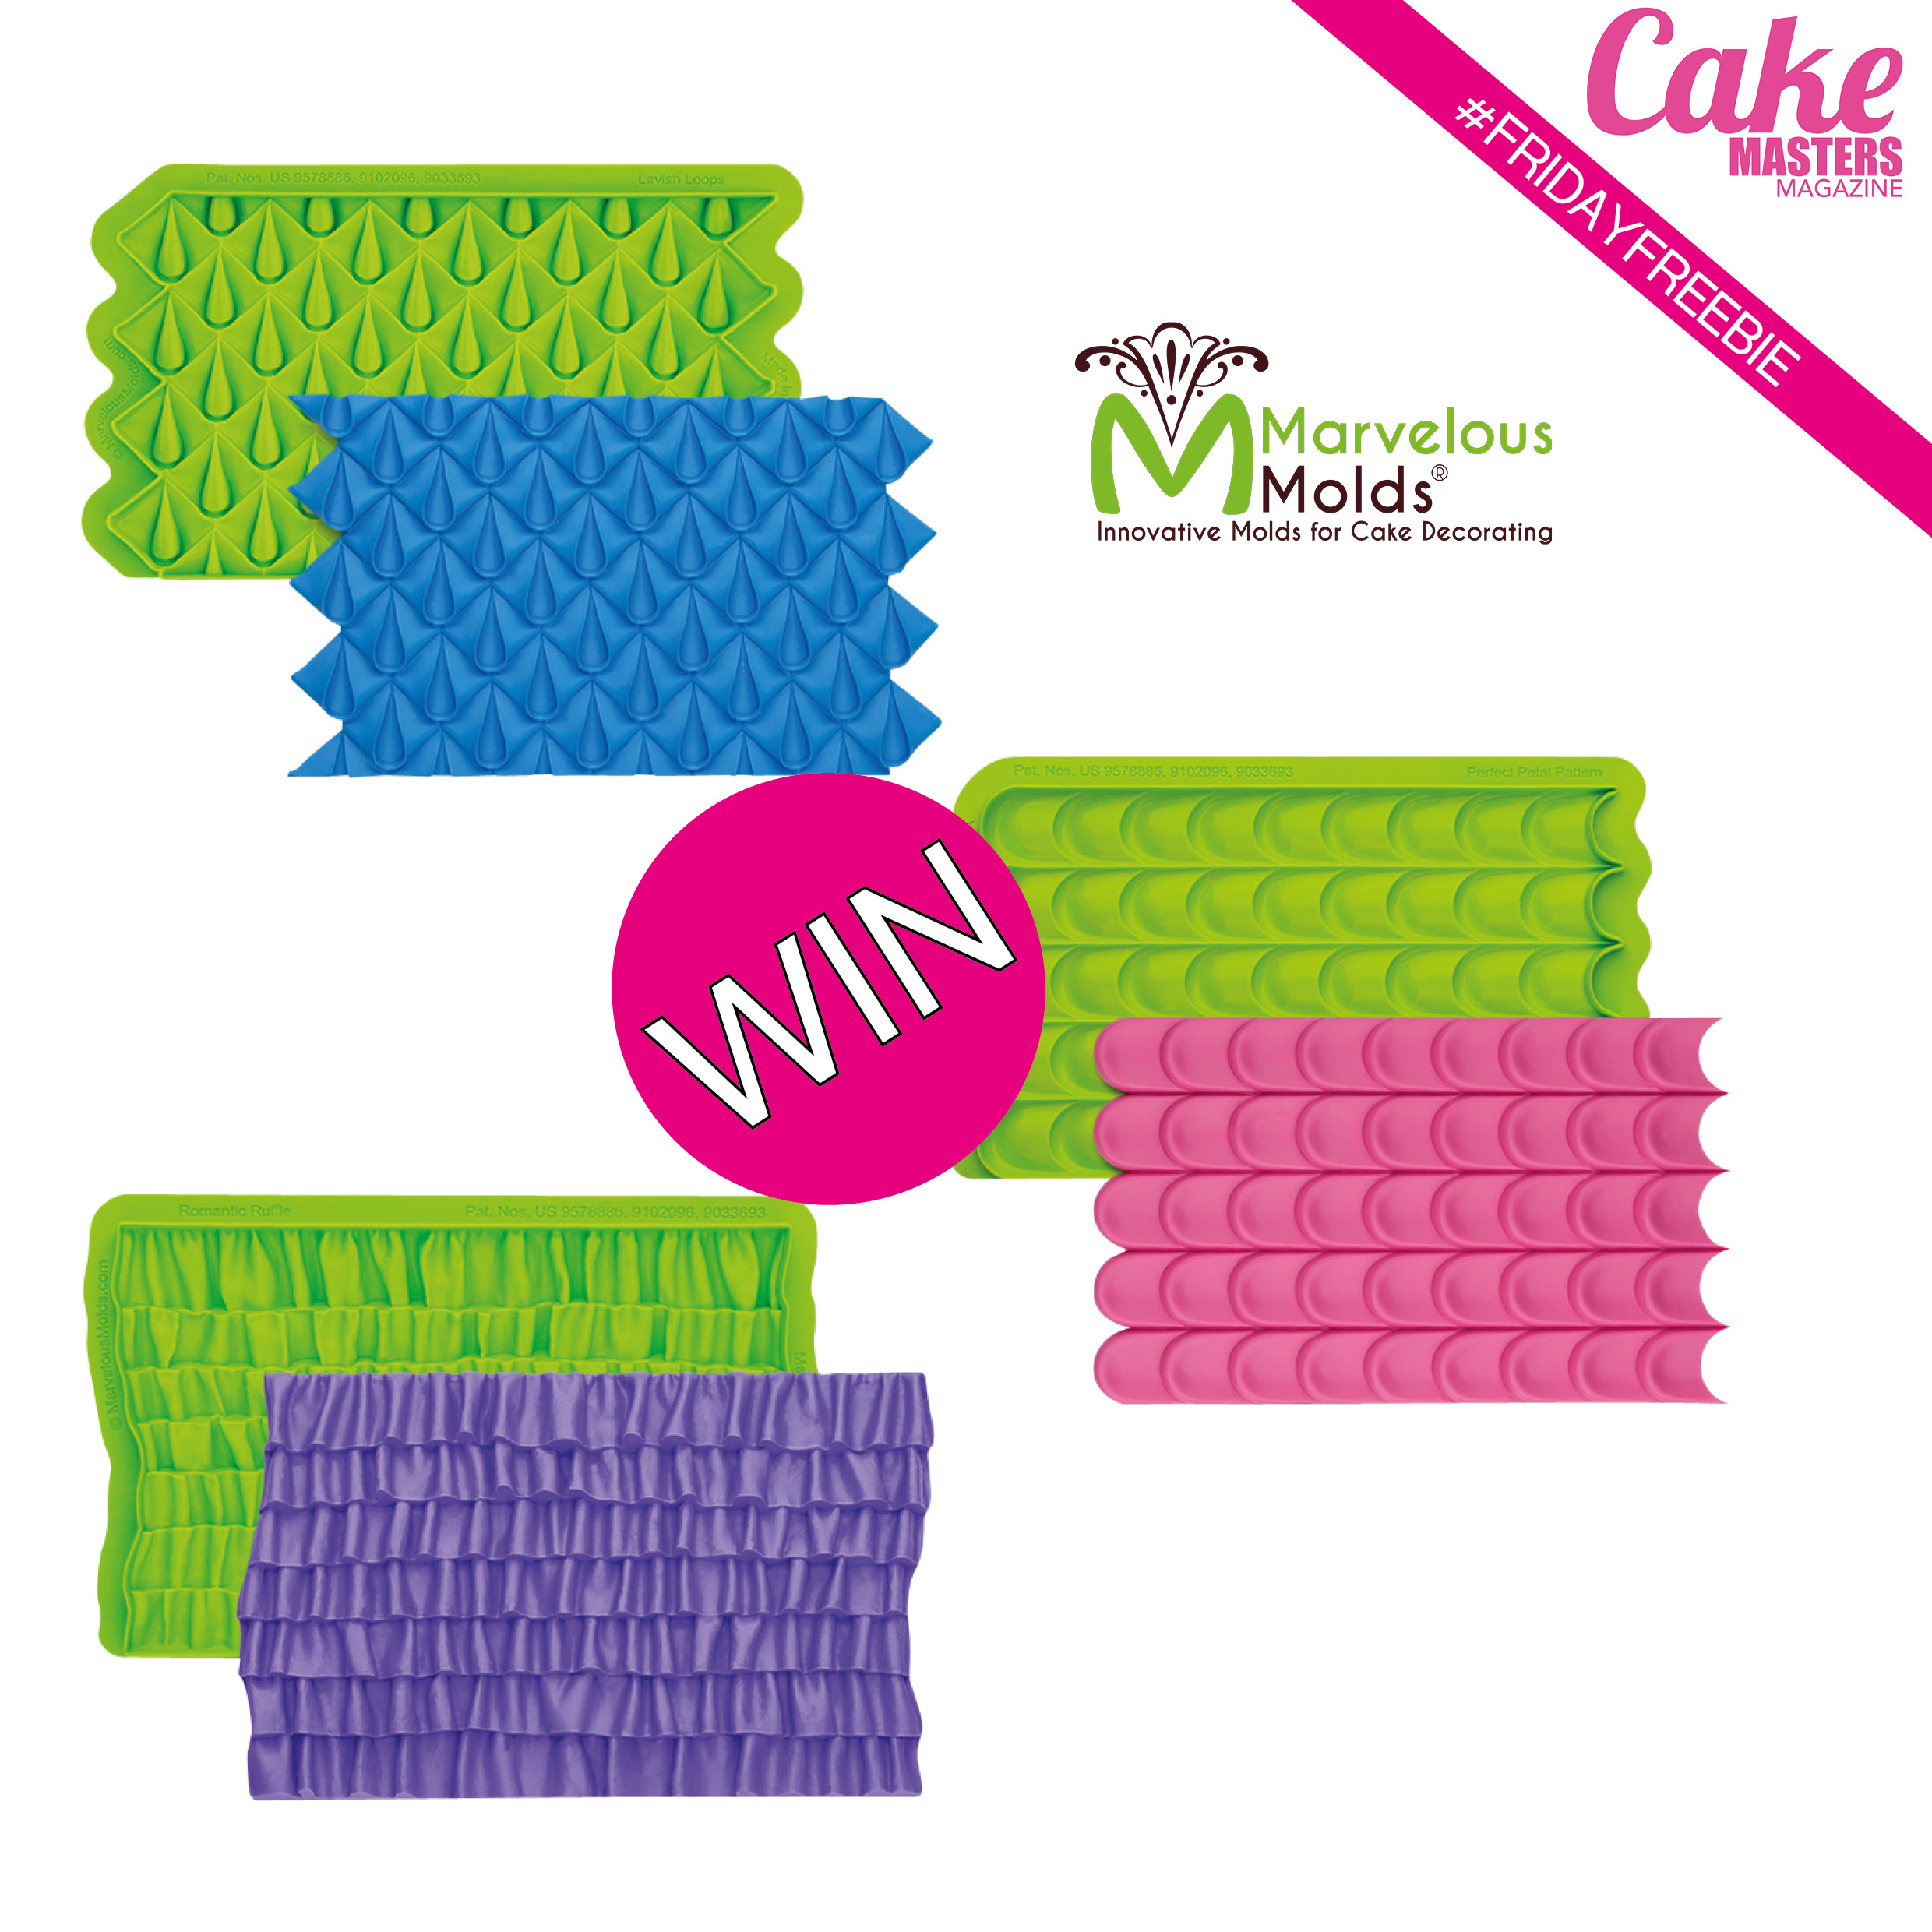 Win our Marvelous Molds Friday Freebie!